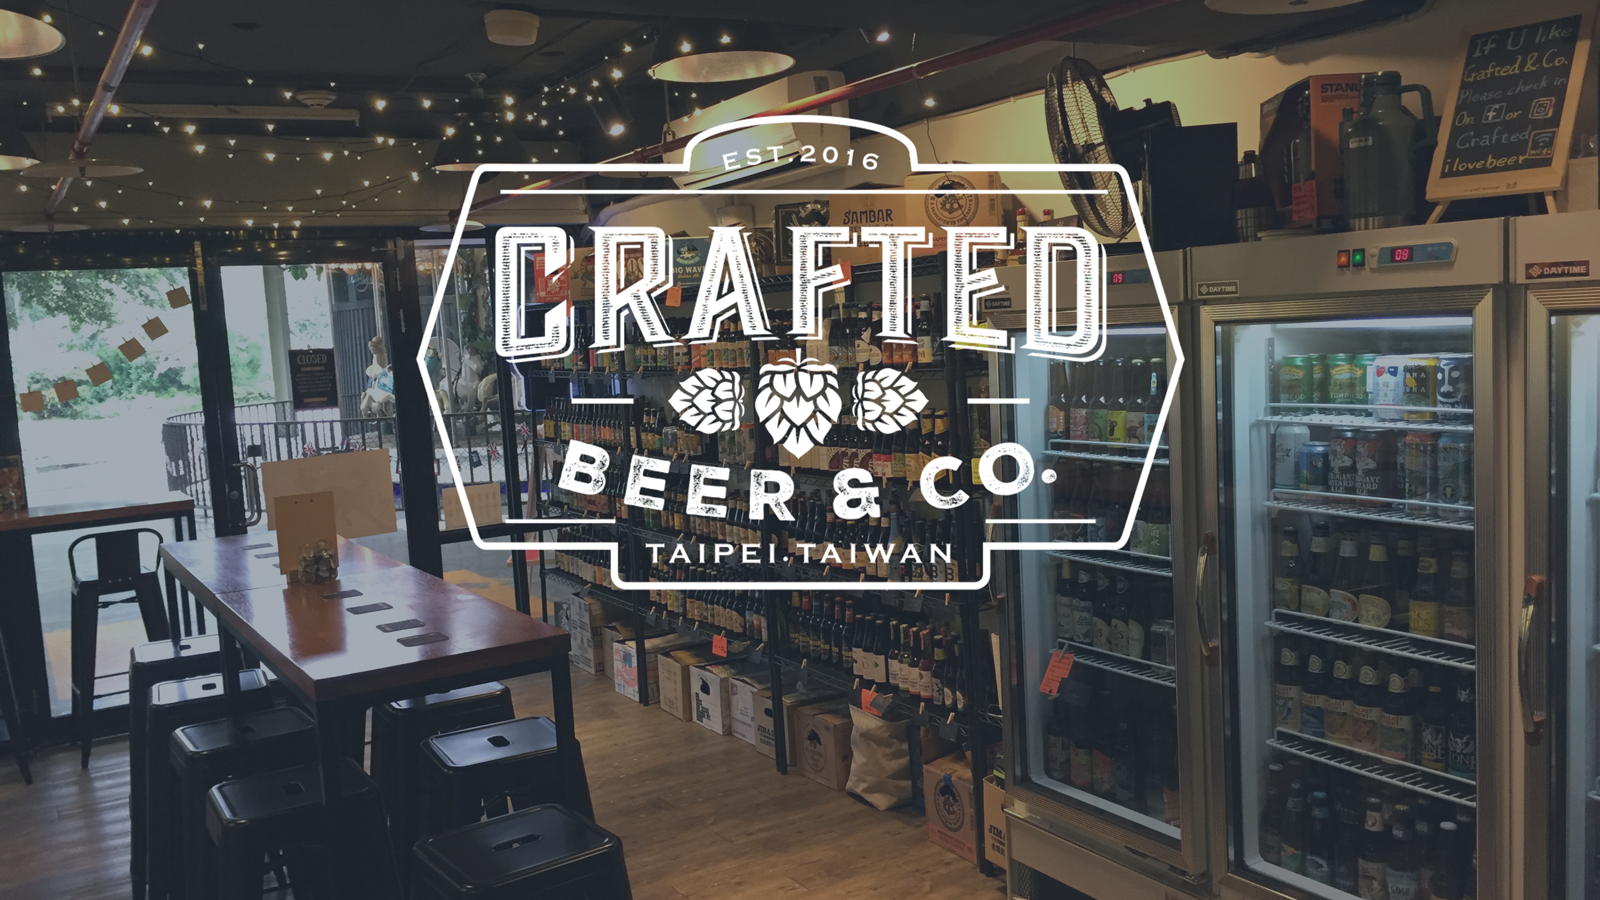 Crafted - Beer and Co.